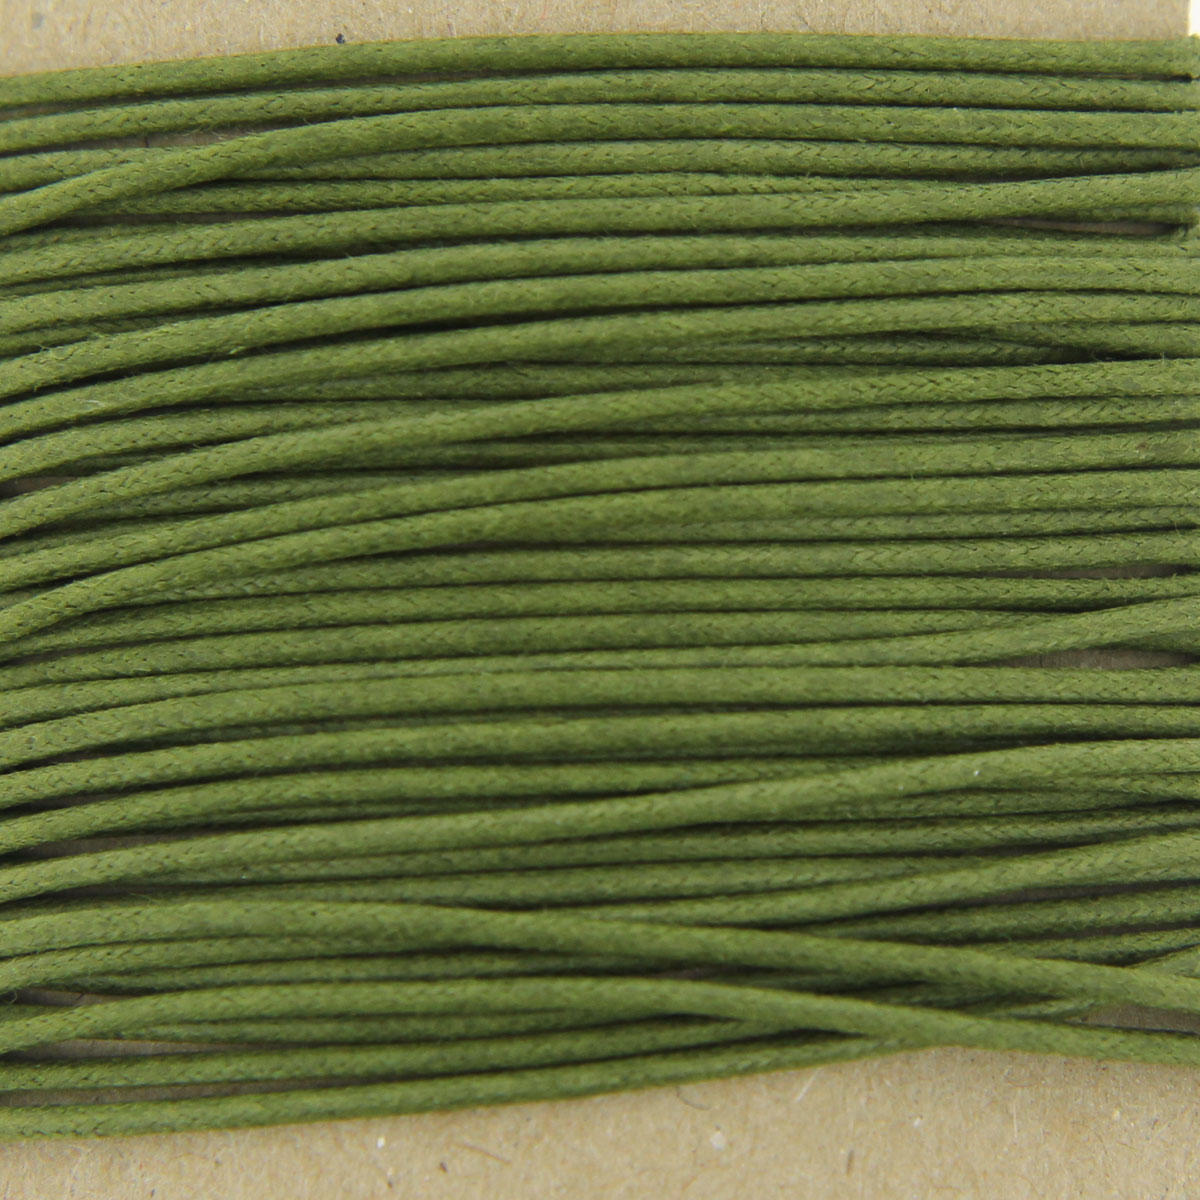 Olive 1.3mm Bead Jewellery Making Cord